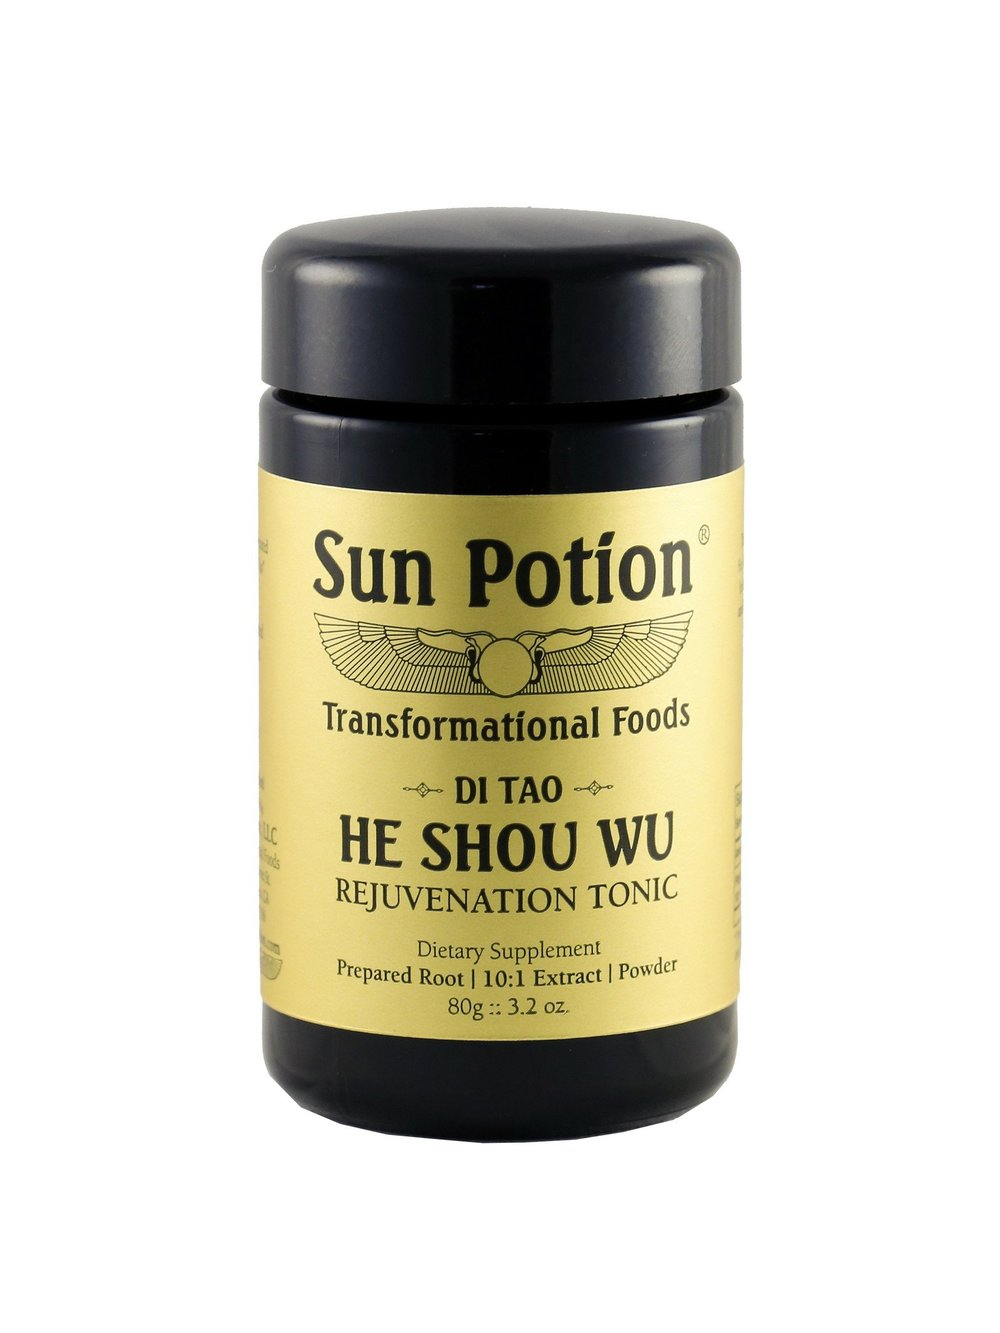 He Shou Wu (Wildcrafted) - 80g Jar   $55.00                       Traditional Taoist Herb & Jing Tonic    Superior Blood and Longevity Tonic   He Shou Wu has a history of use as a longevity, anti-aging, blood-building, beauty, & rejuvenation food.